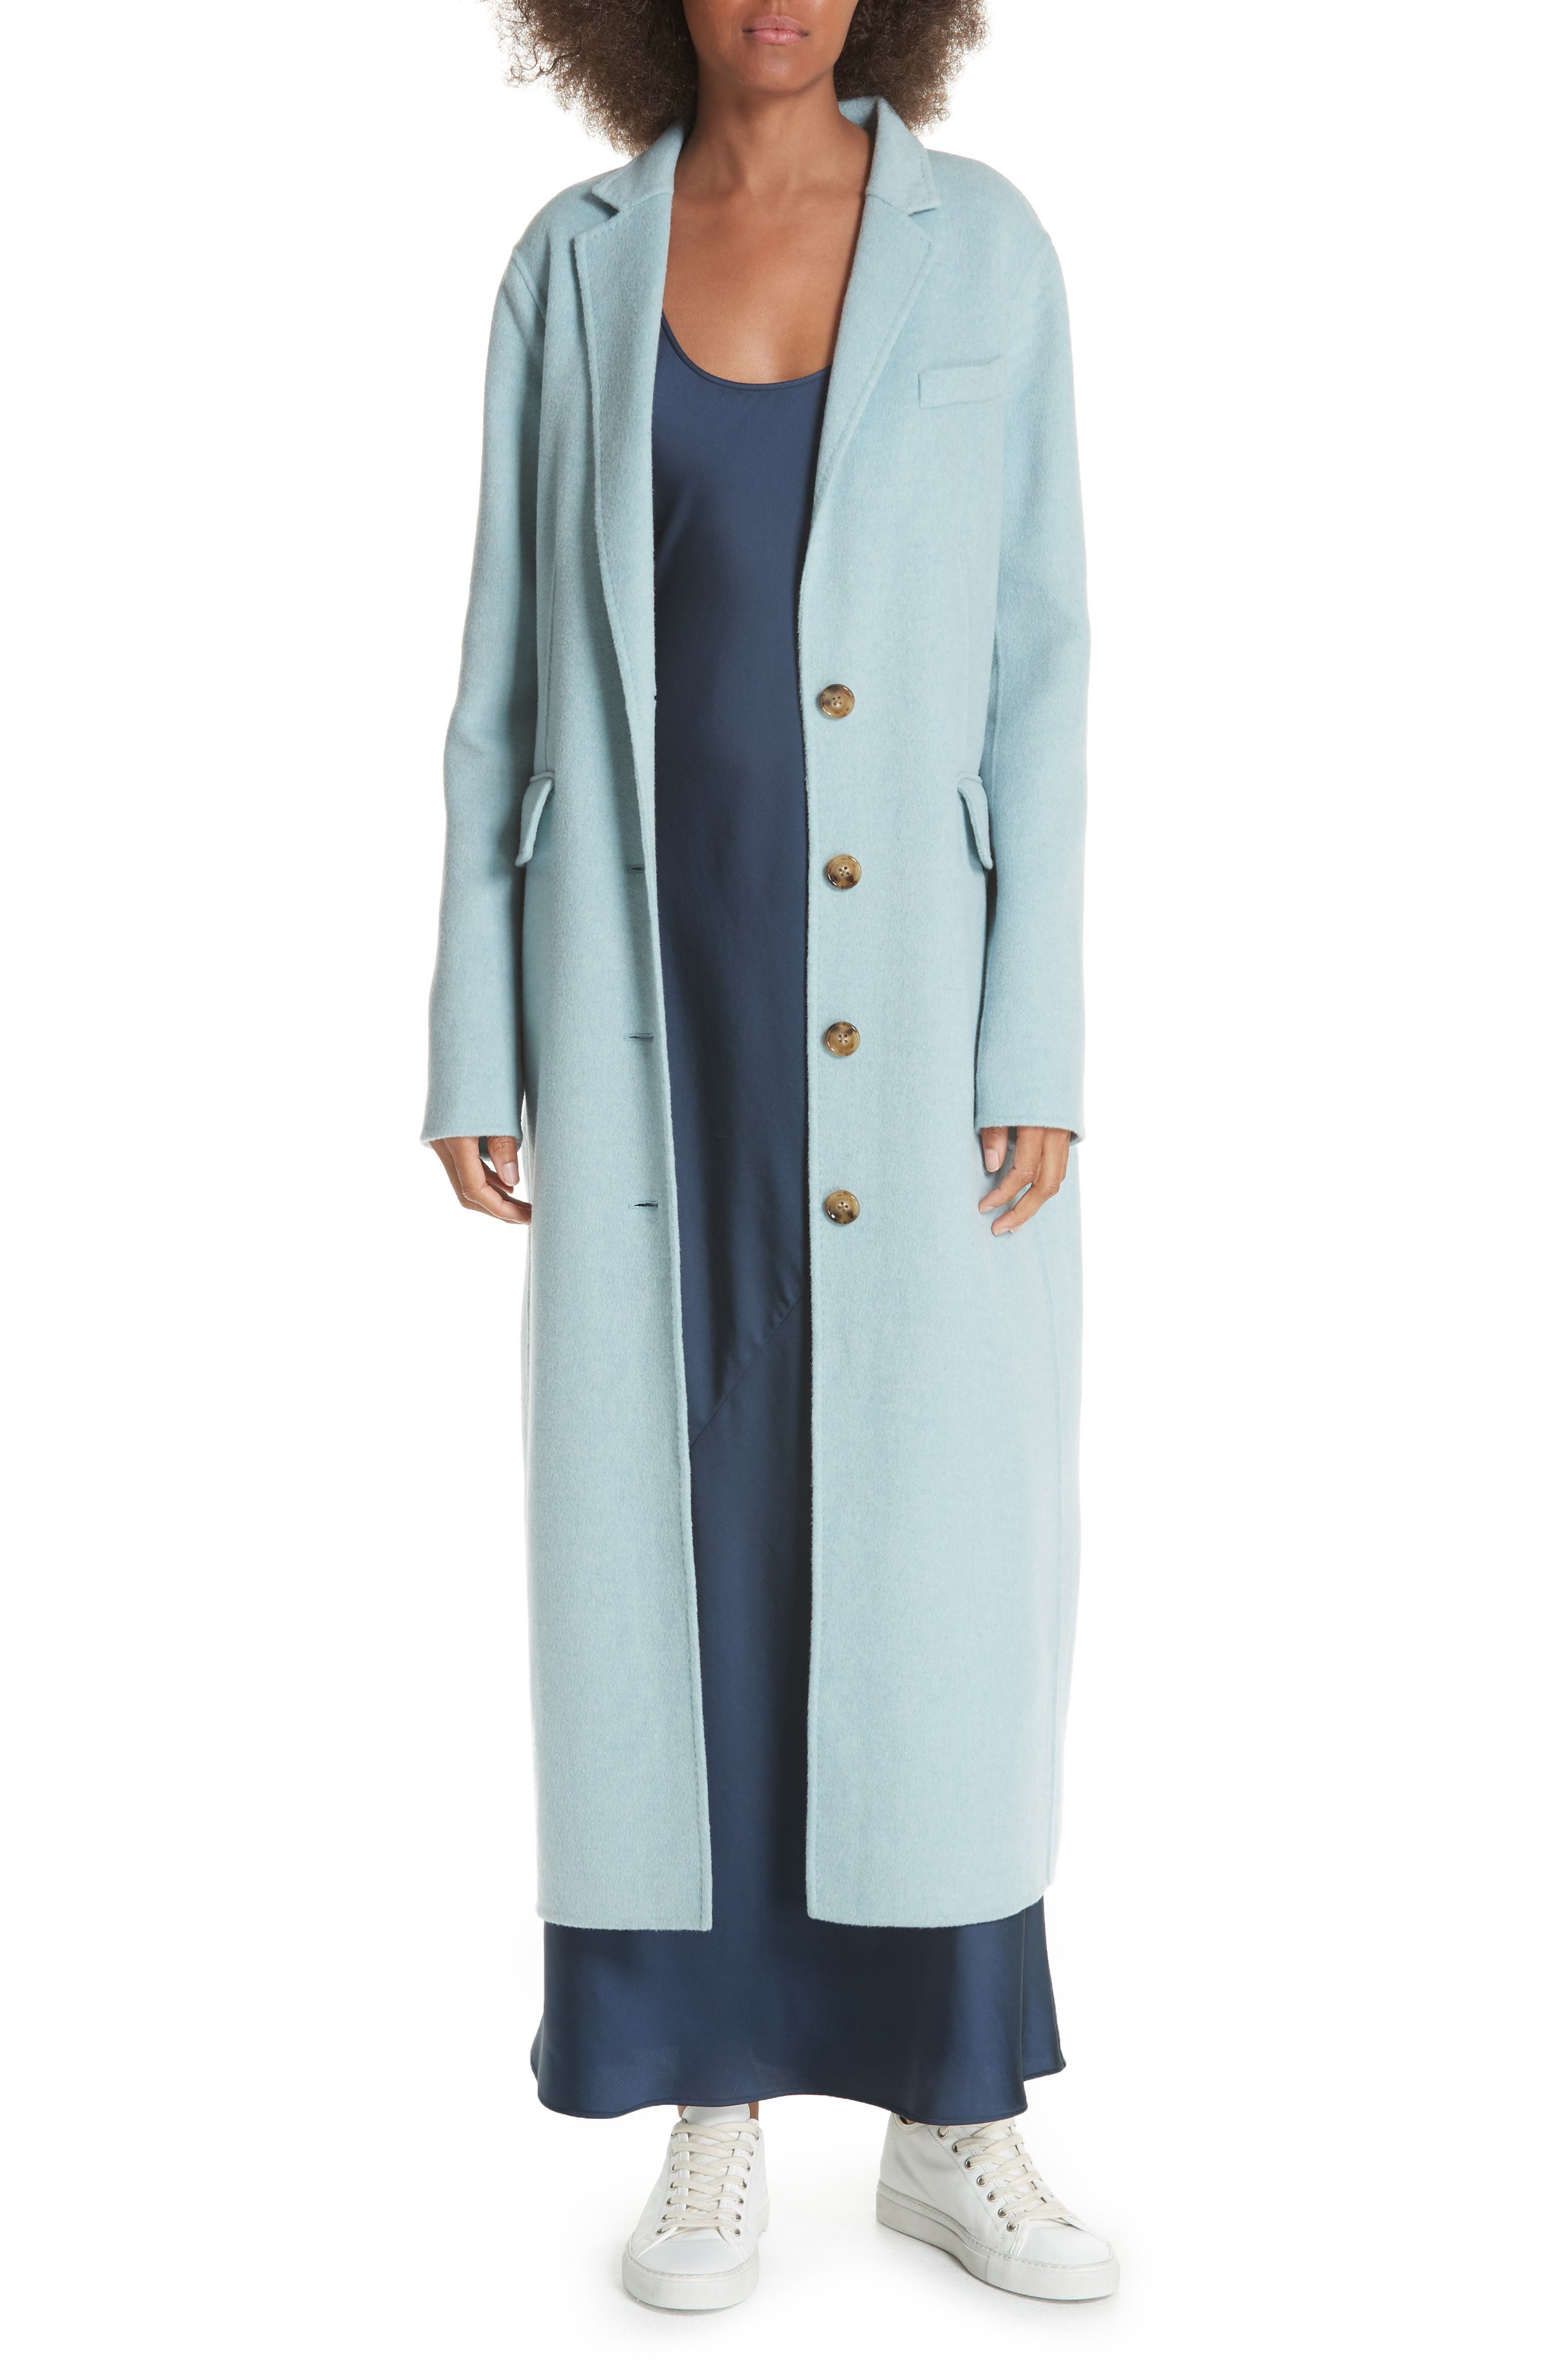 ELIZABETH AND JAMES Russell Wool Blend Coat, Main, color, 400